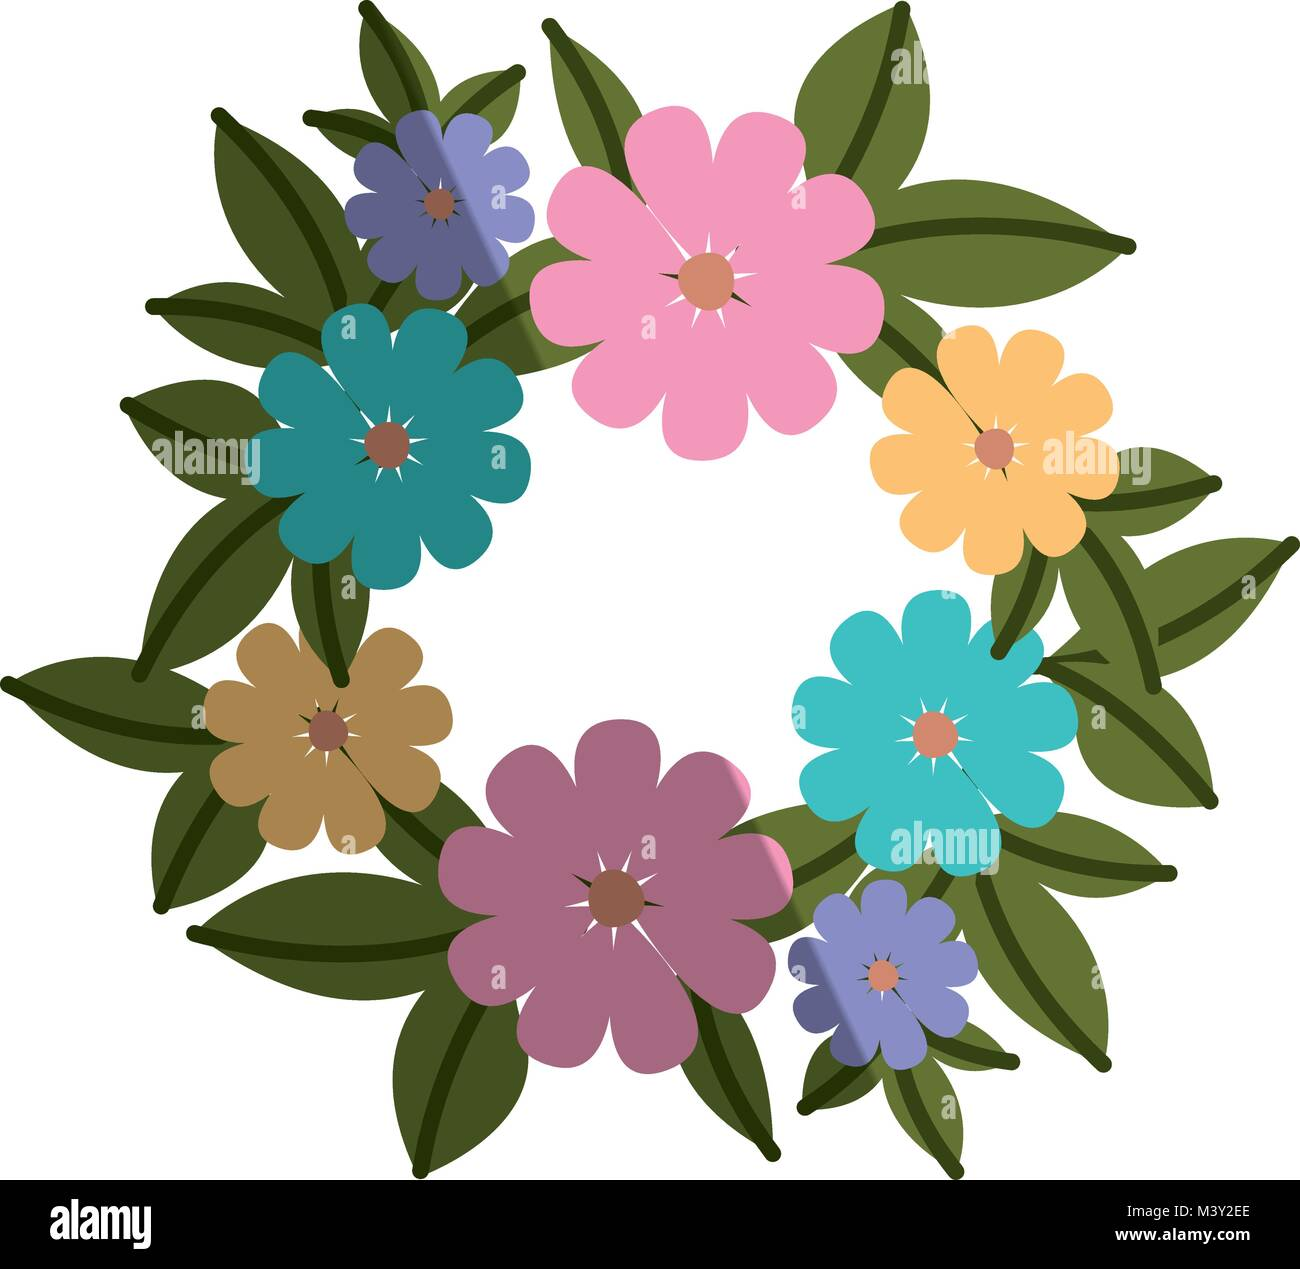 Floral Crown Stock Photos Floral Crown Stock Images Alamy